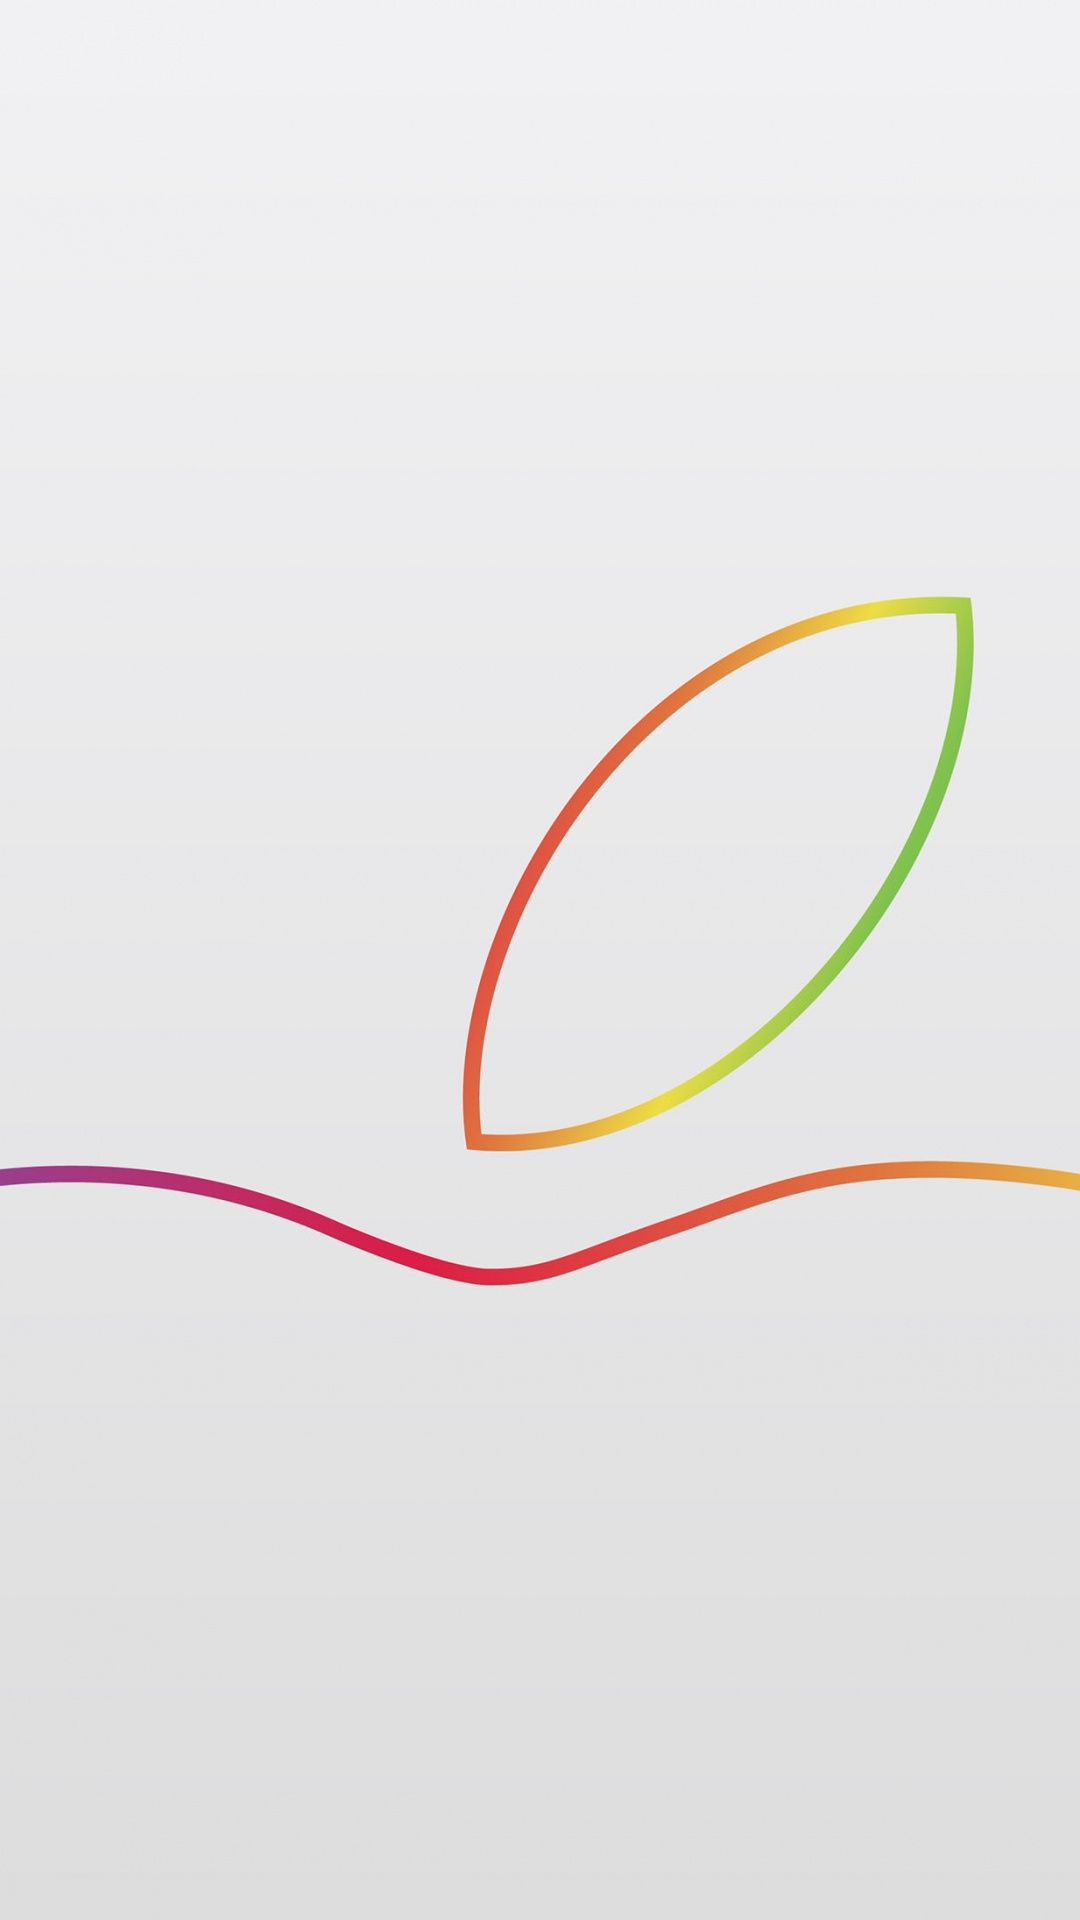 official apple logo 2014. best of macintosh apple logo wallpapers. tap image for more! - @mobile9 | official 2014